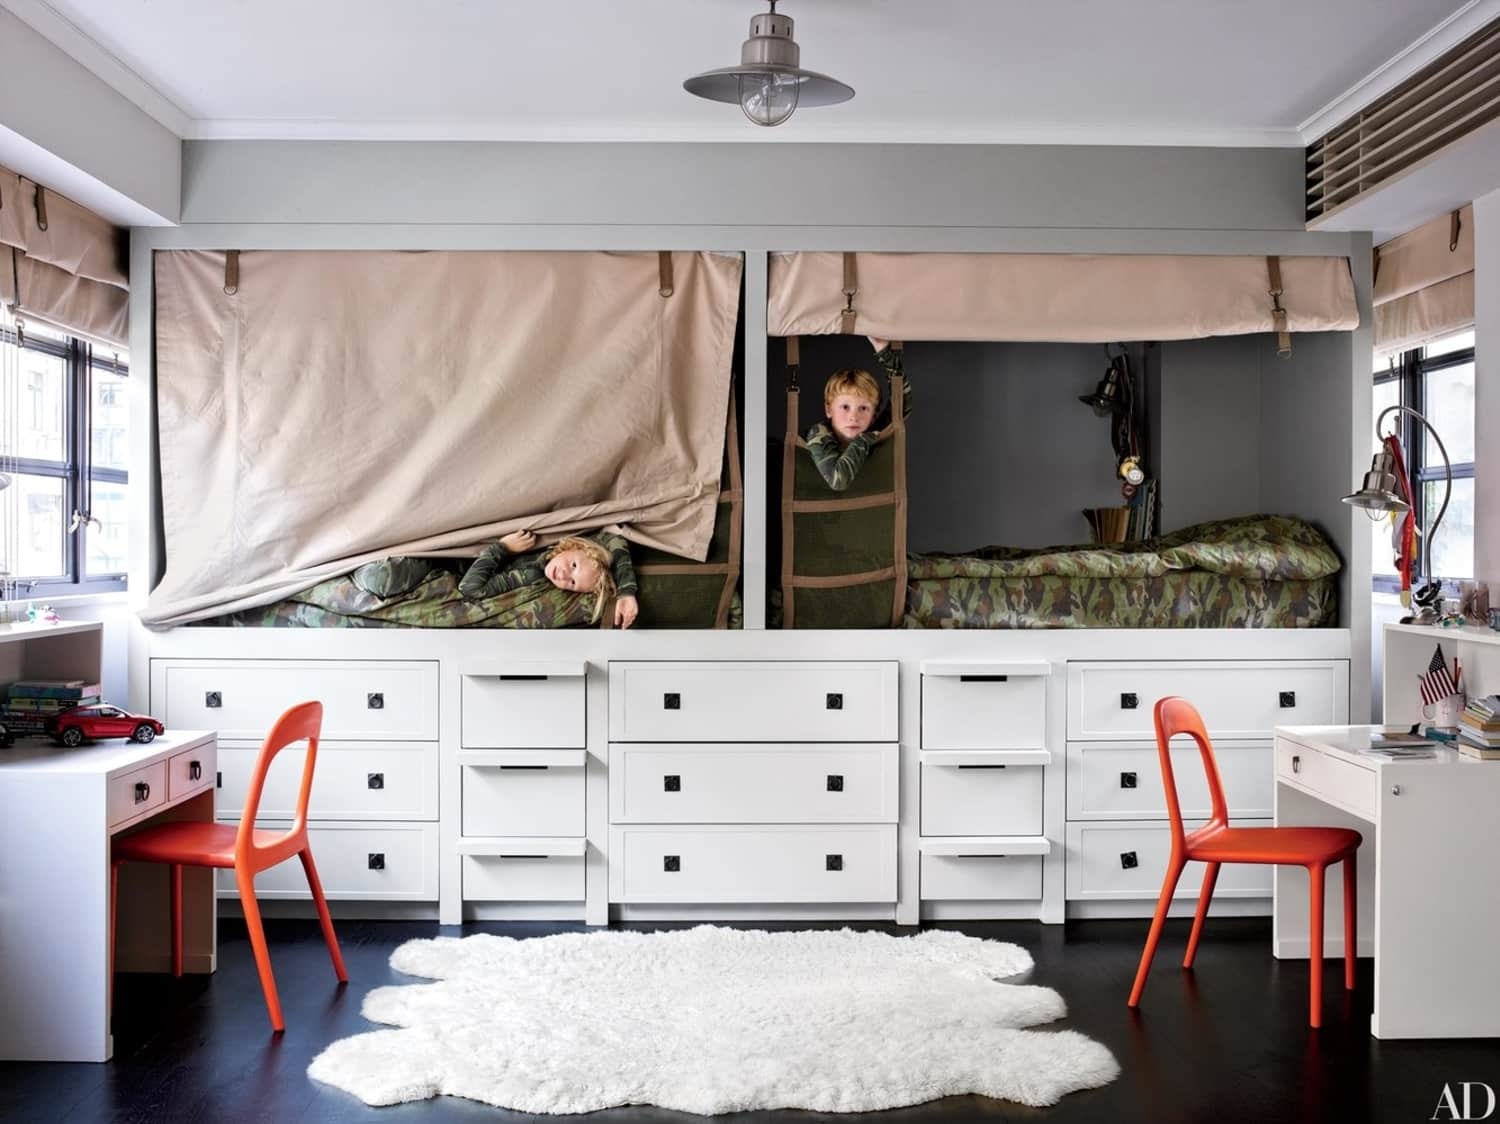 The Genius Small Bedroom Trick That Works for Kids & Adults